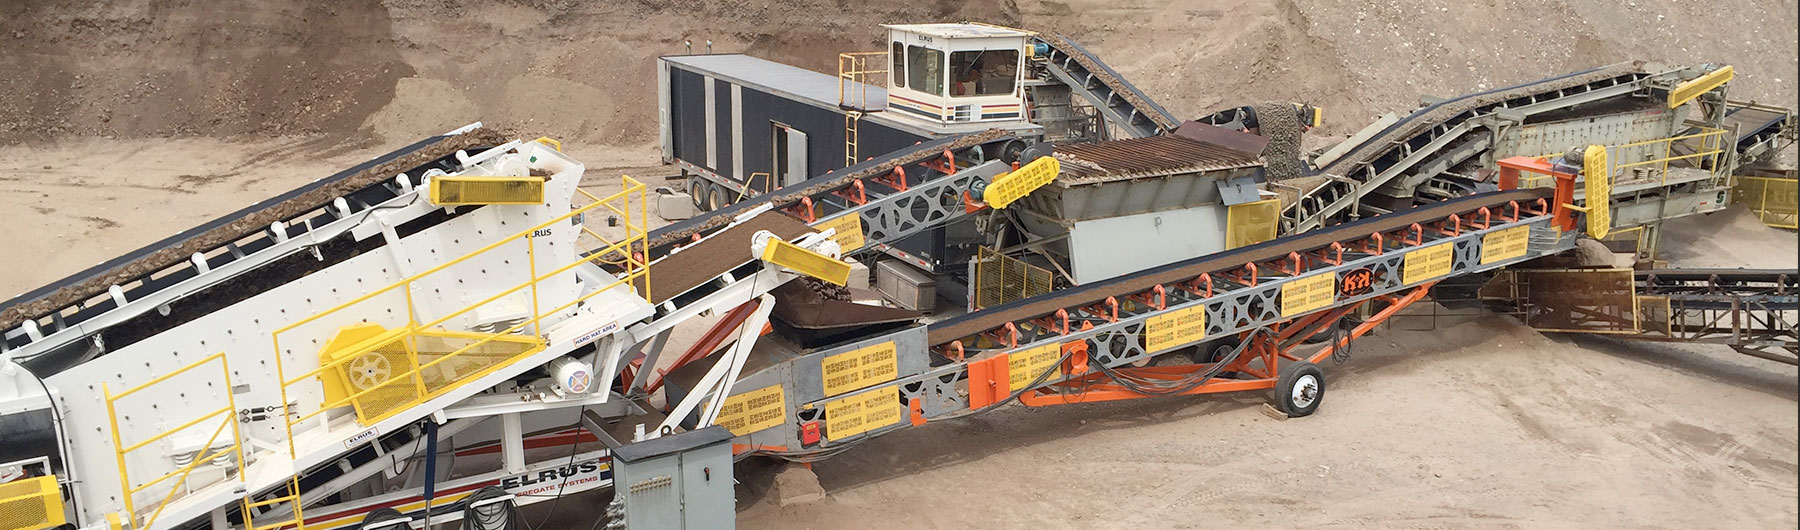 Our Conveyor, Portable and Stationary Equipment